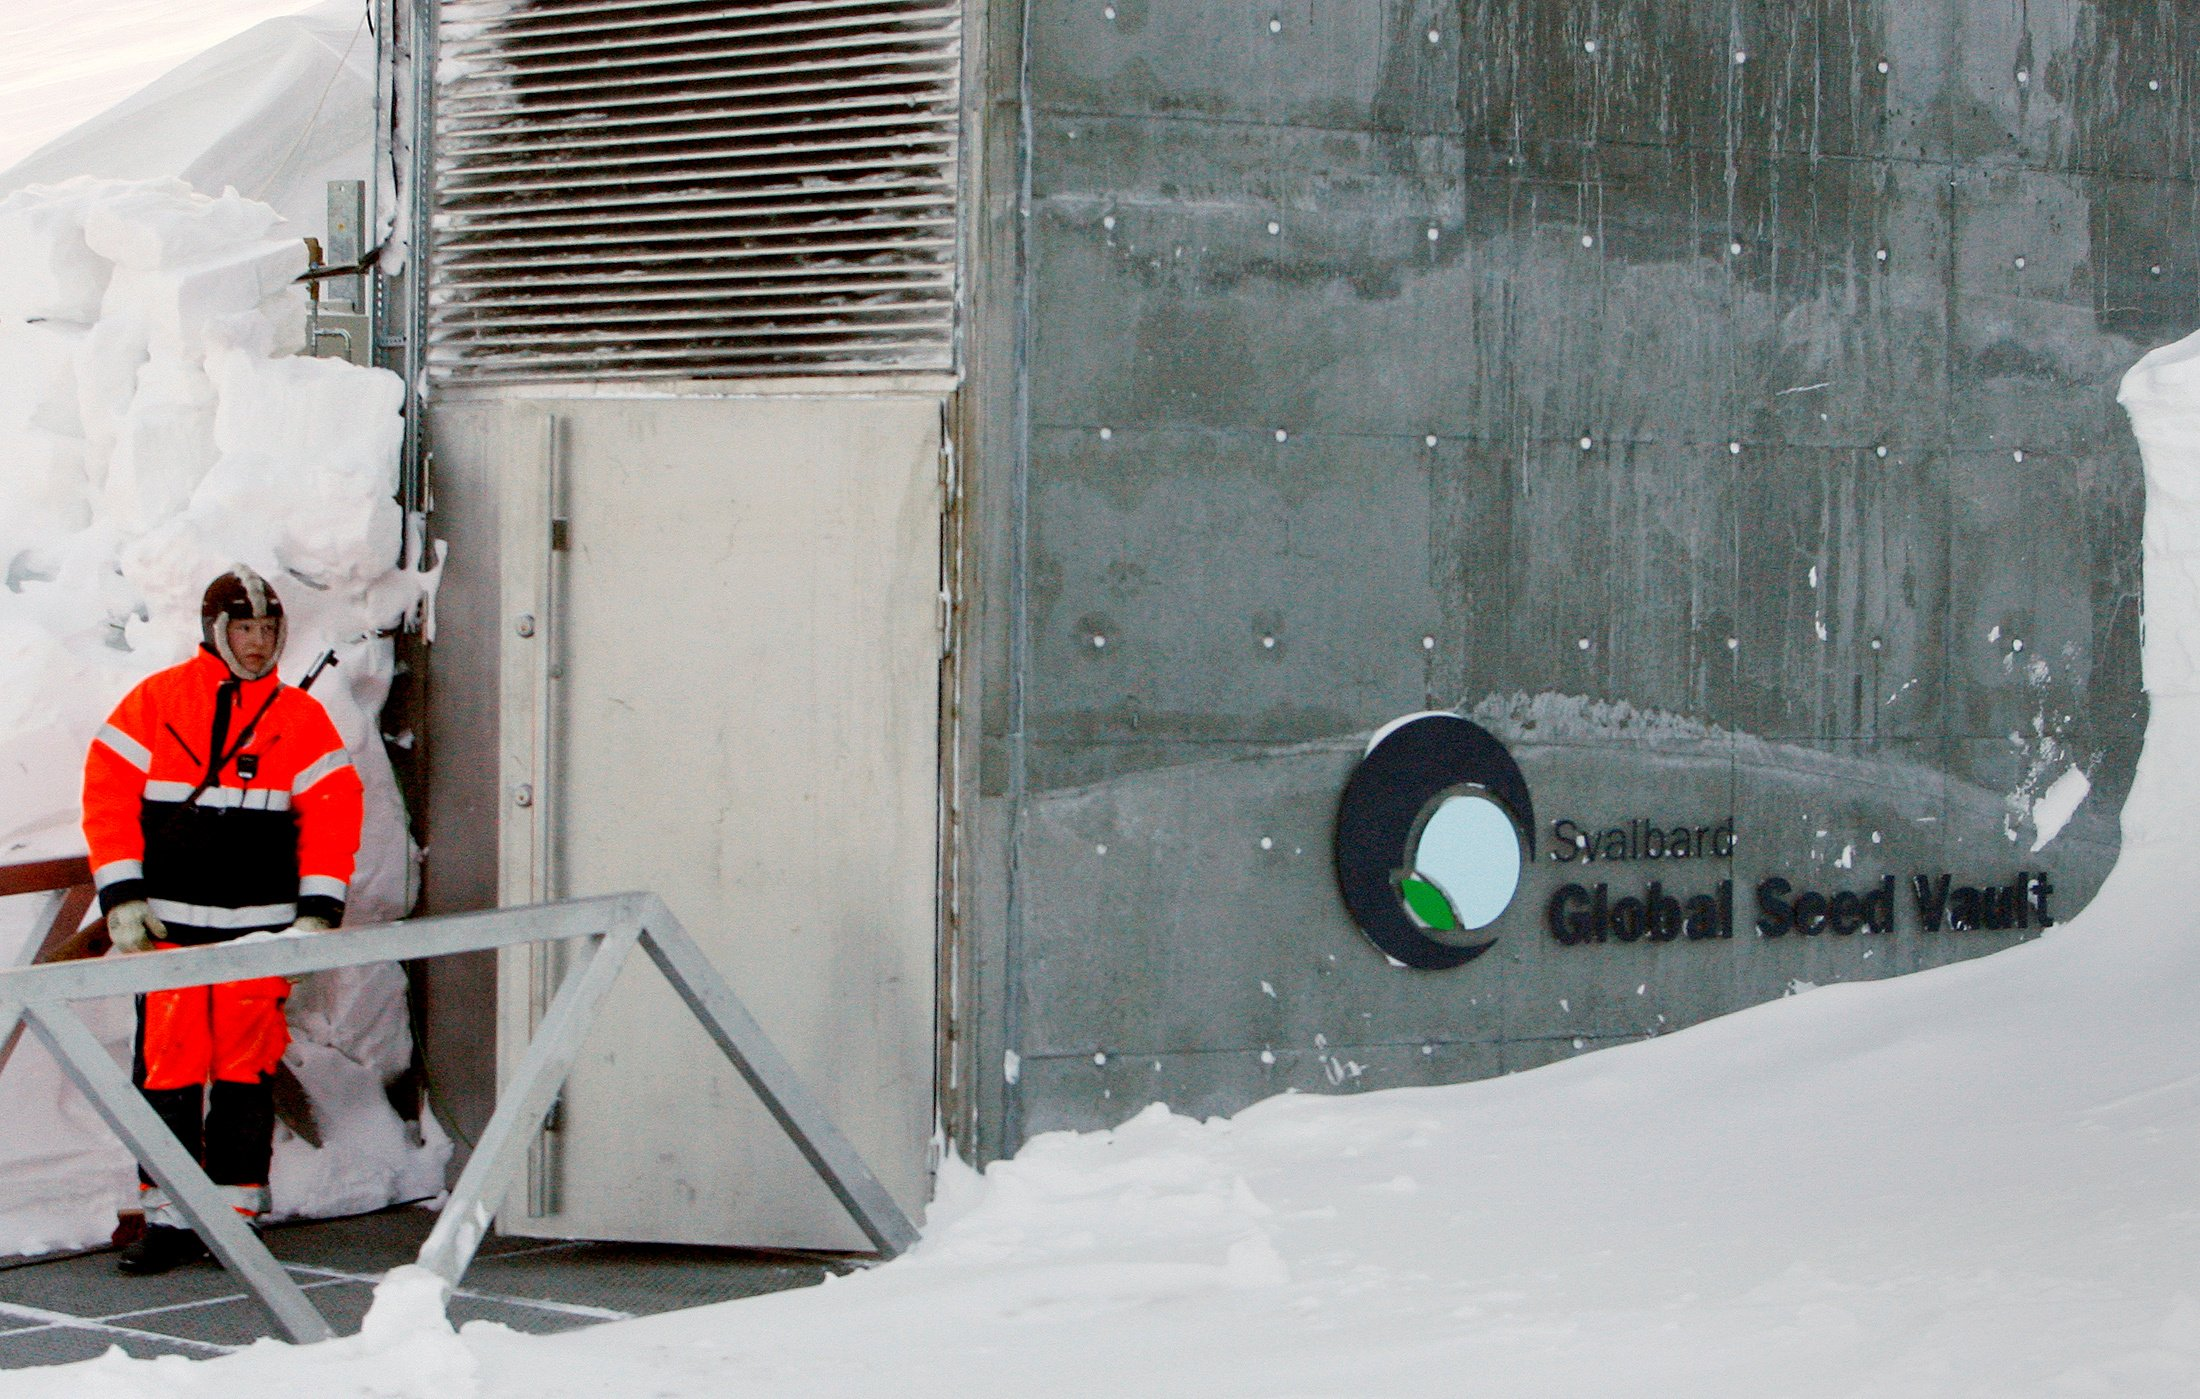 Svalbard S Doomsday Vault Is Set To Welcome Its 1 Millionth Crop